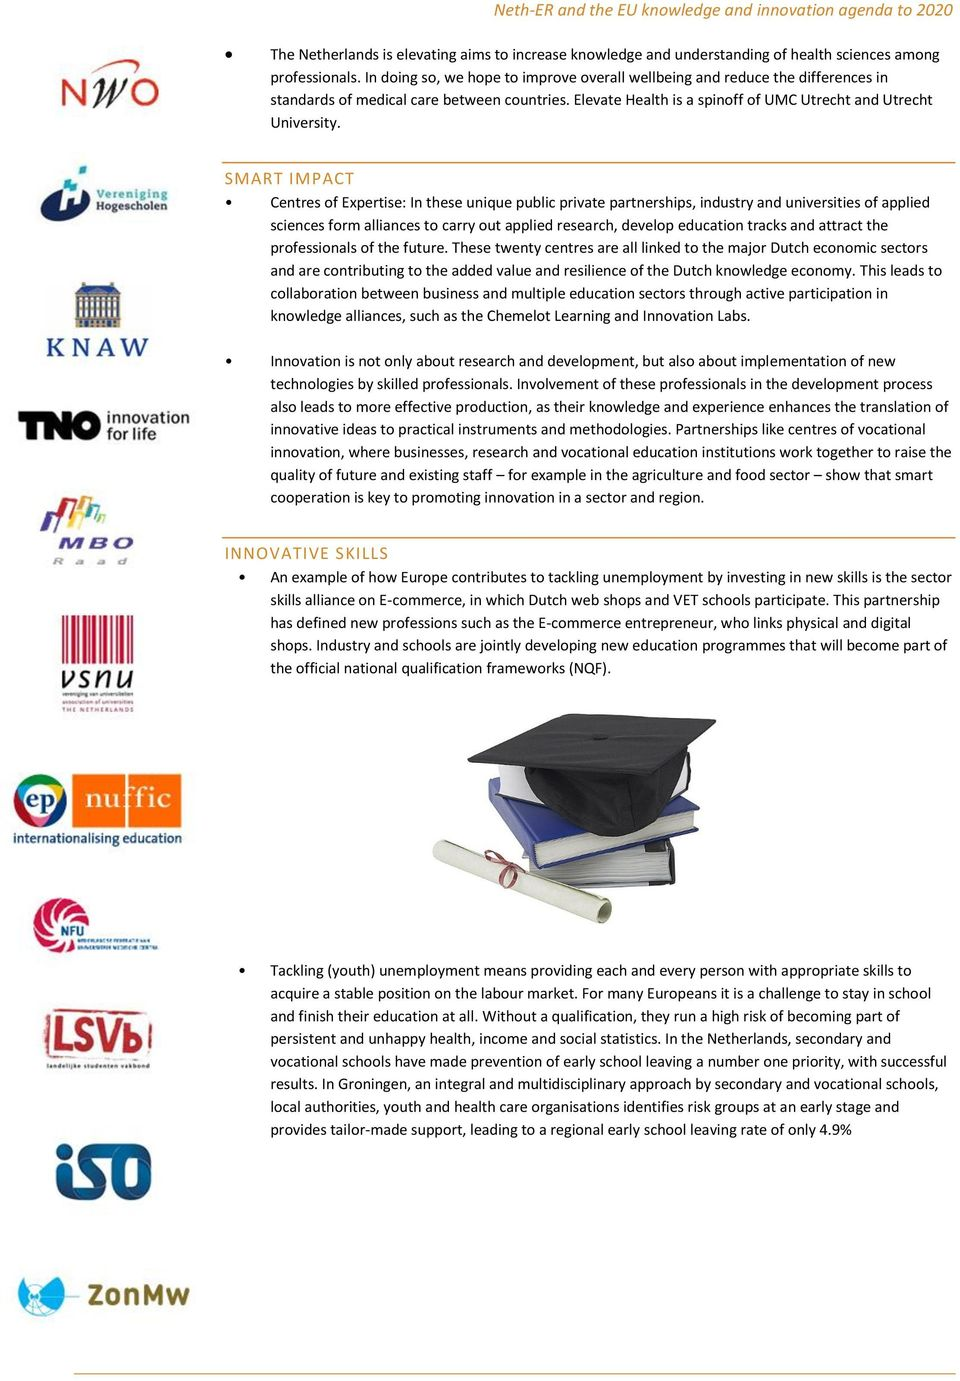 SMART IMPACT Centres of Expertise: In these unique public private partnerships, industry and universities of applied sciences form alliances to carry out applied research, develop education tracks